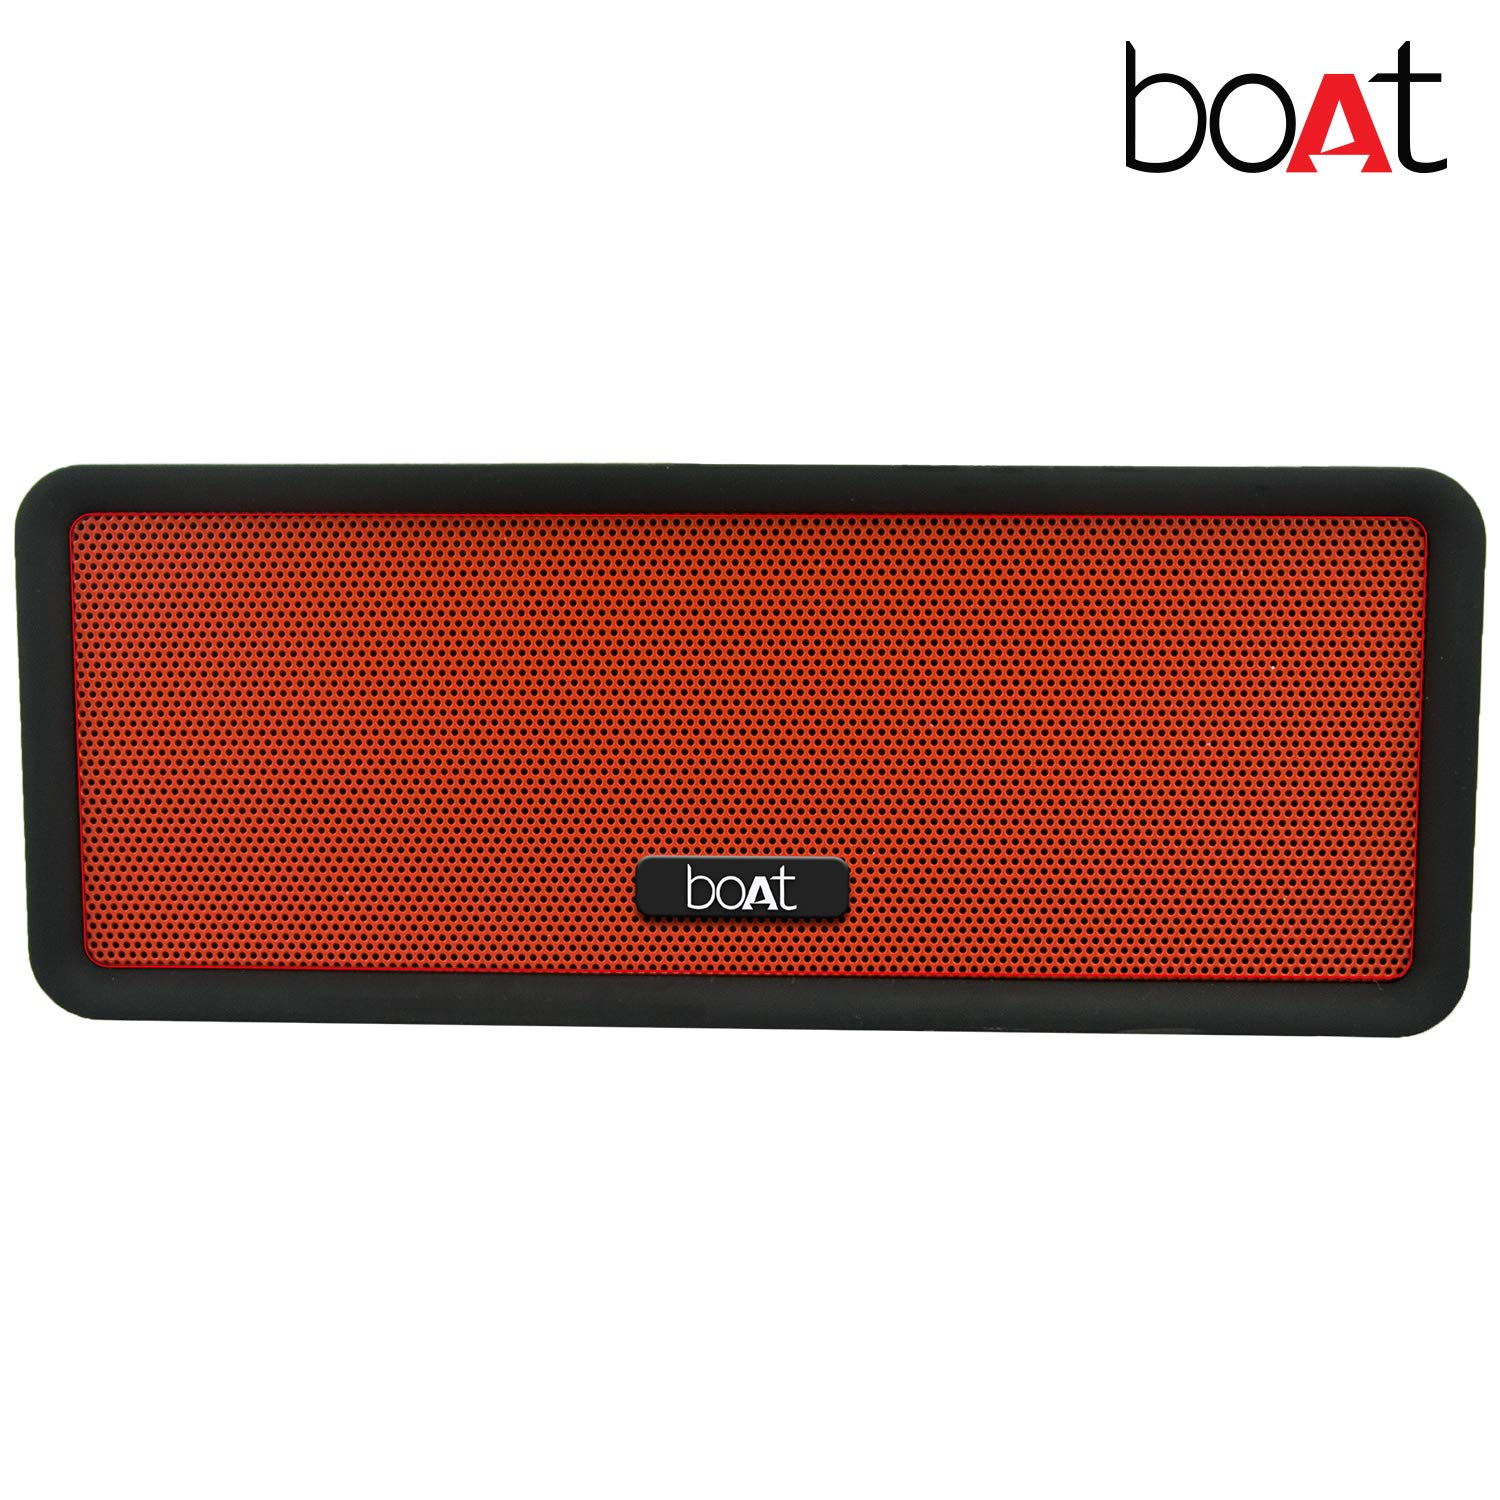 boAt Stone BriXX Dynamic 8W Speaker with Bluetooth/Aux/SD Mode and Dual Tone Finish at Rs.1199